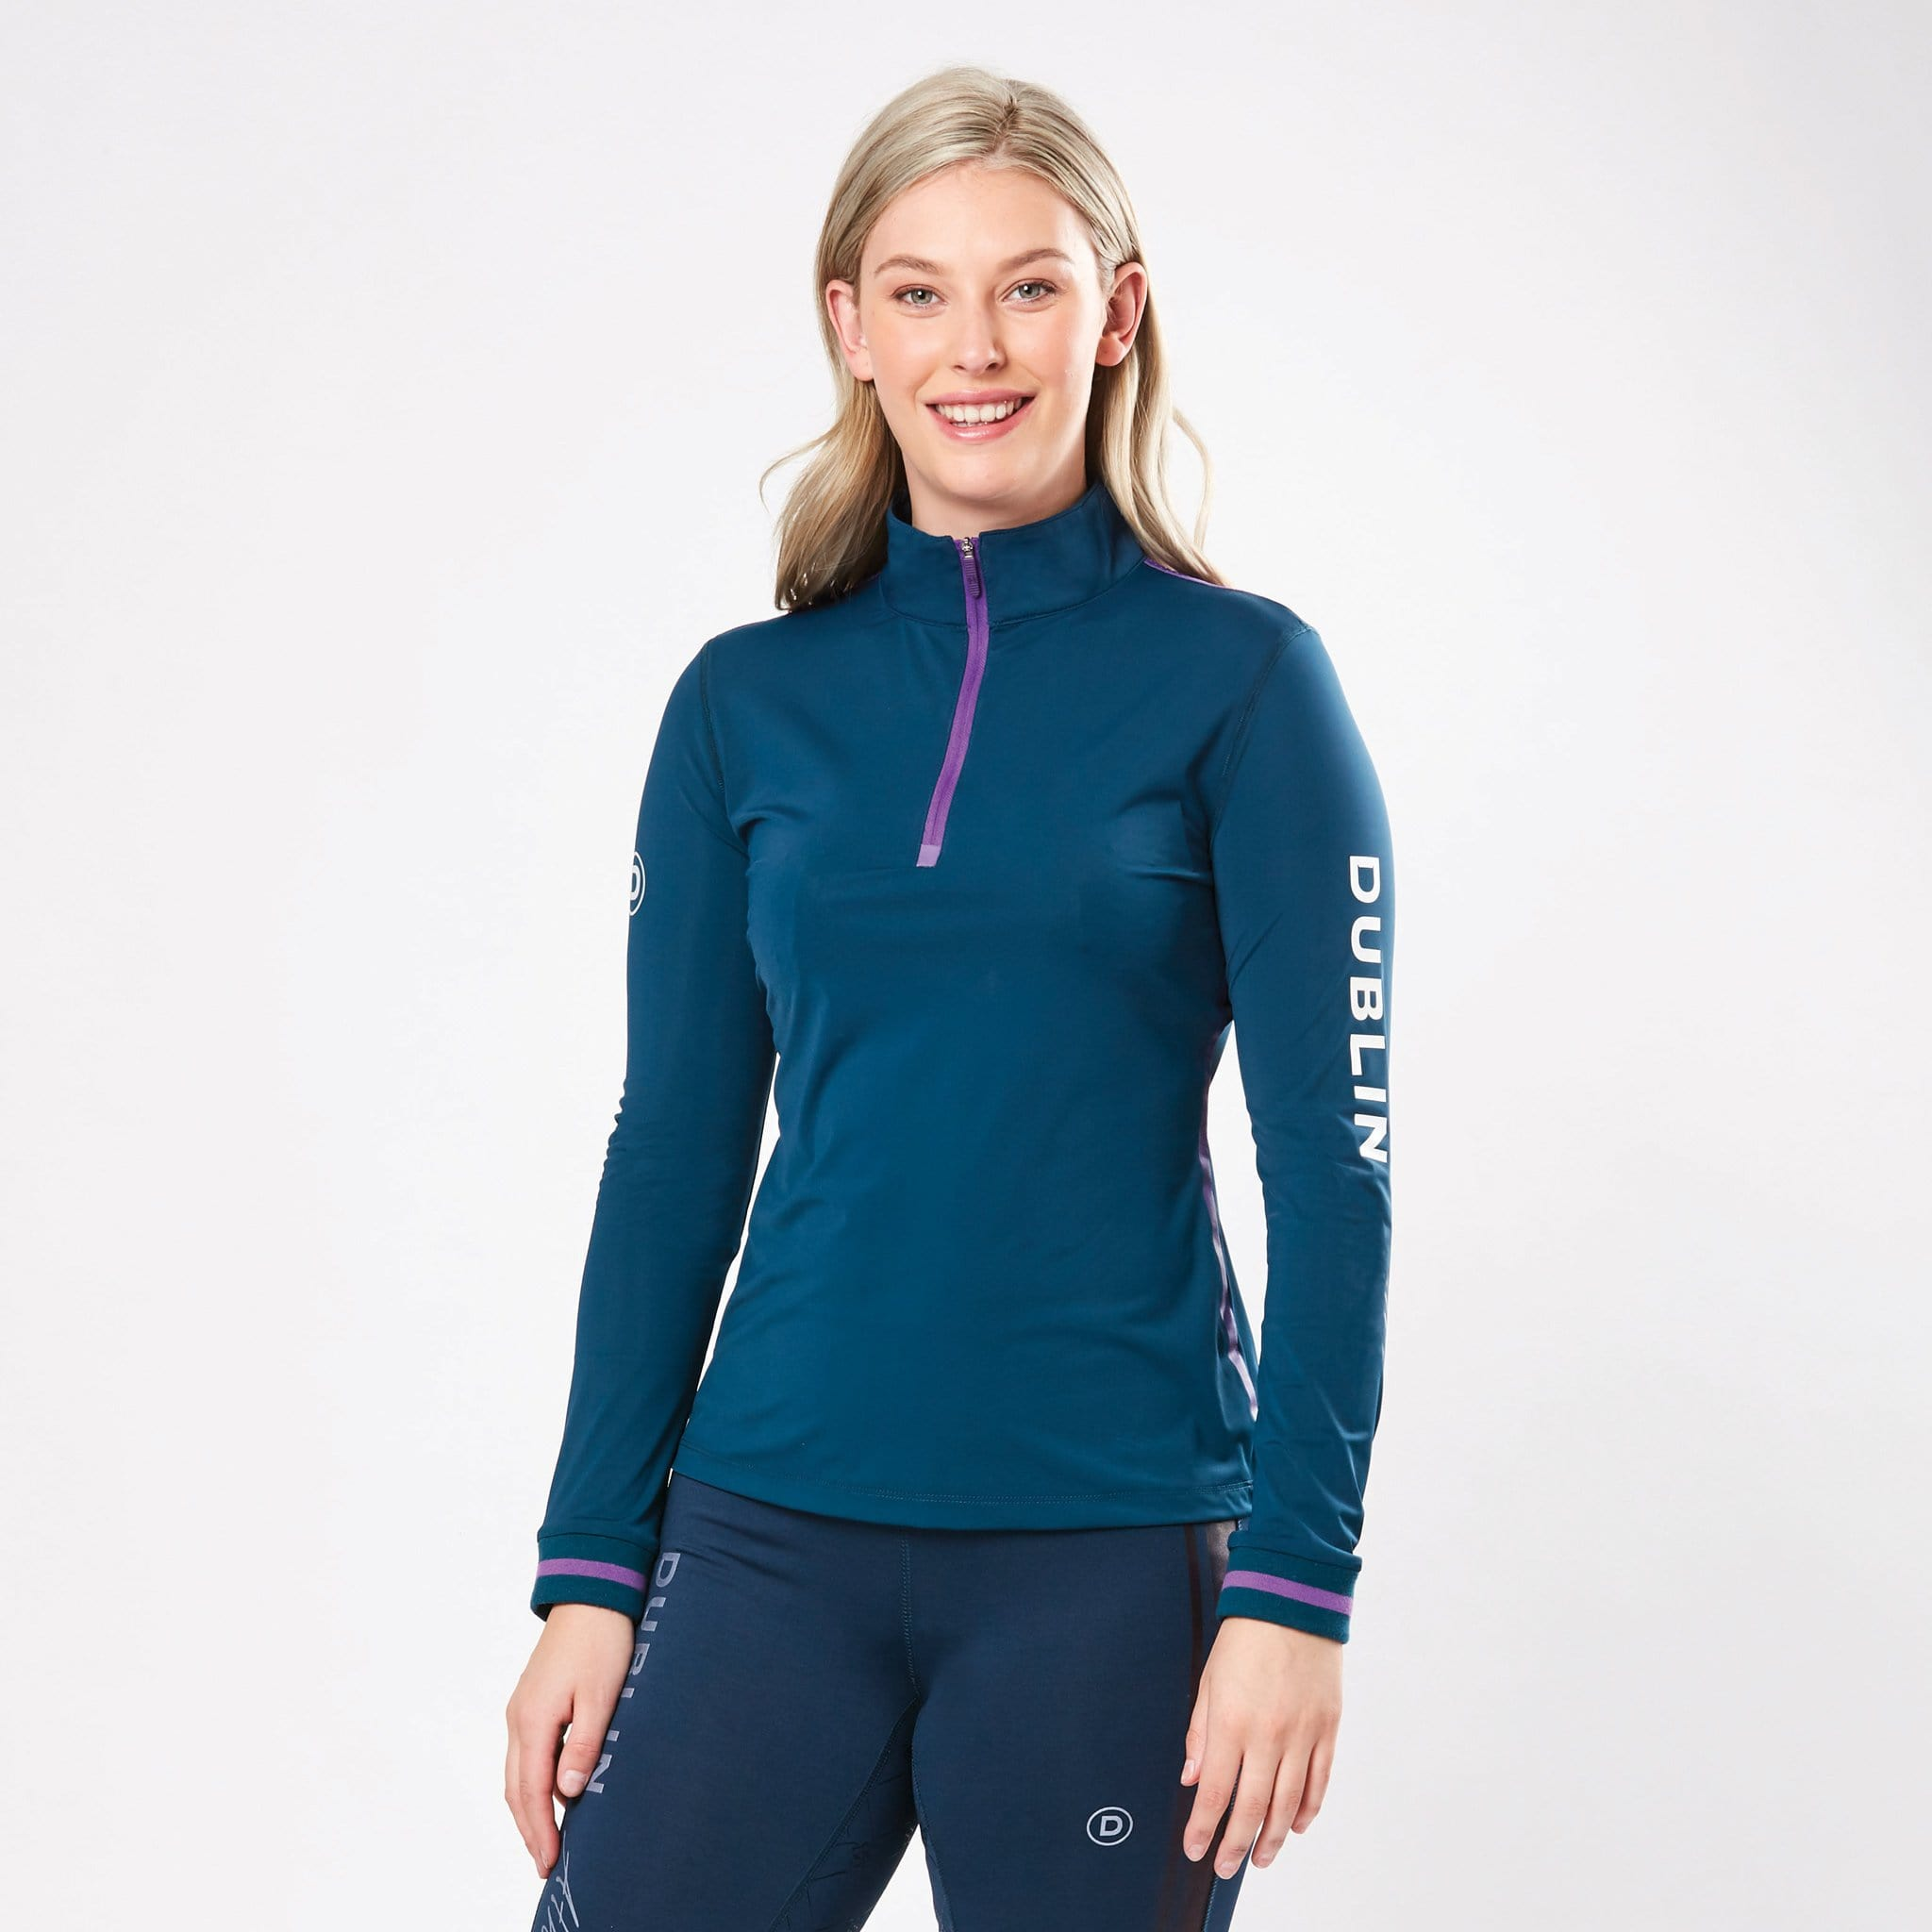 Dublin Shirley Airflow Long Sleeve Top 1002775003 Moonlight Blue On Model Front View